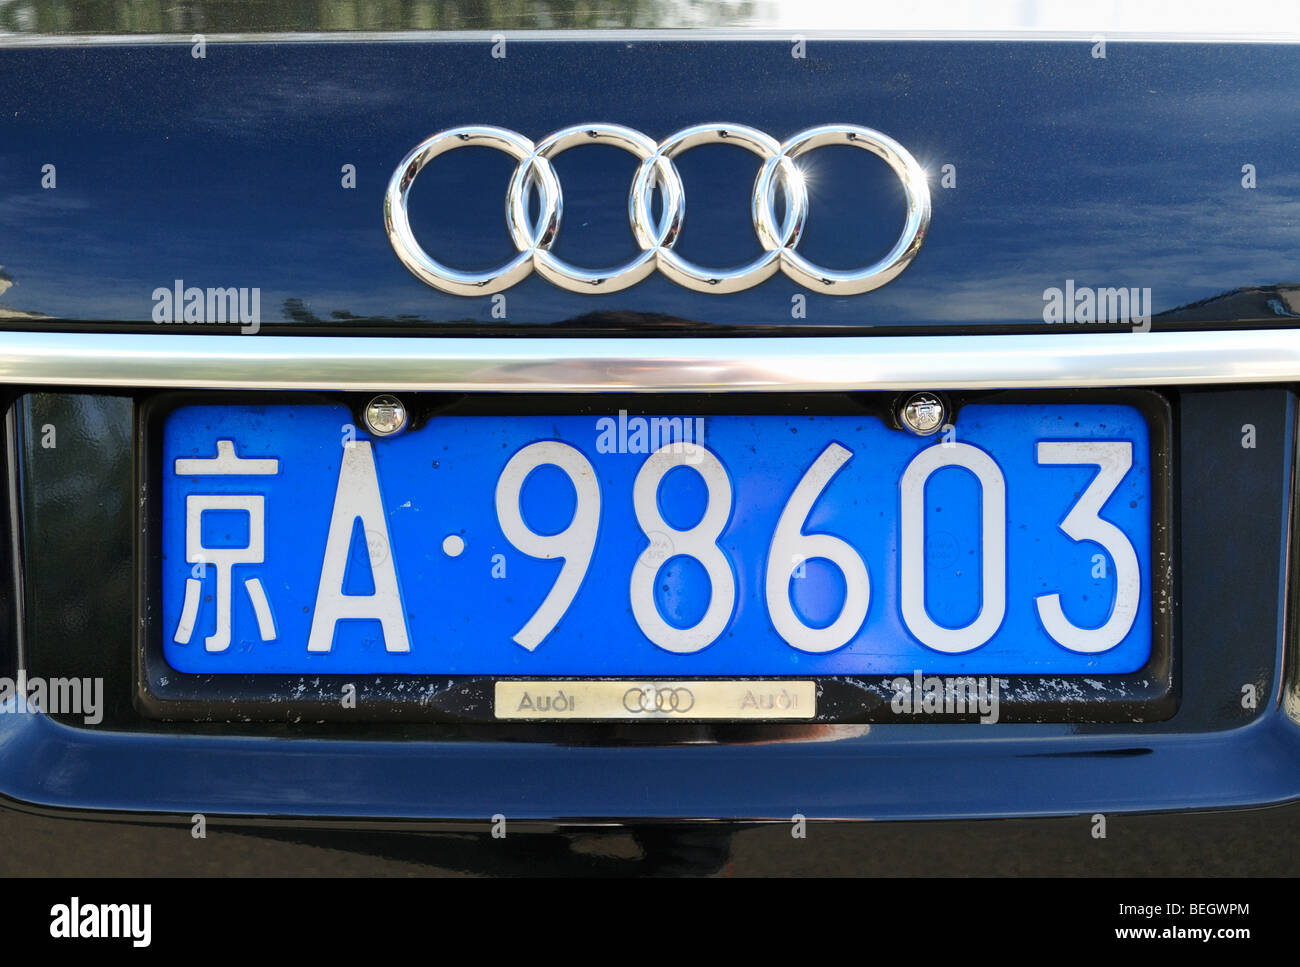 German Number Plate Stock Photos & German Number Plate Stock Images ...